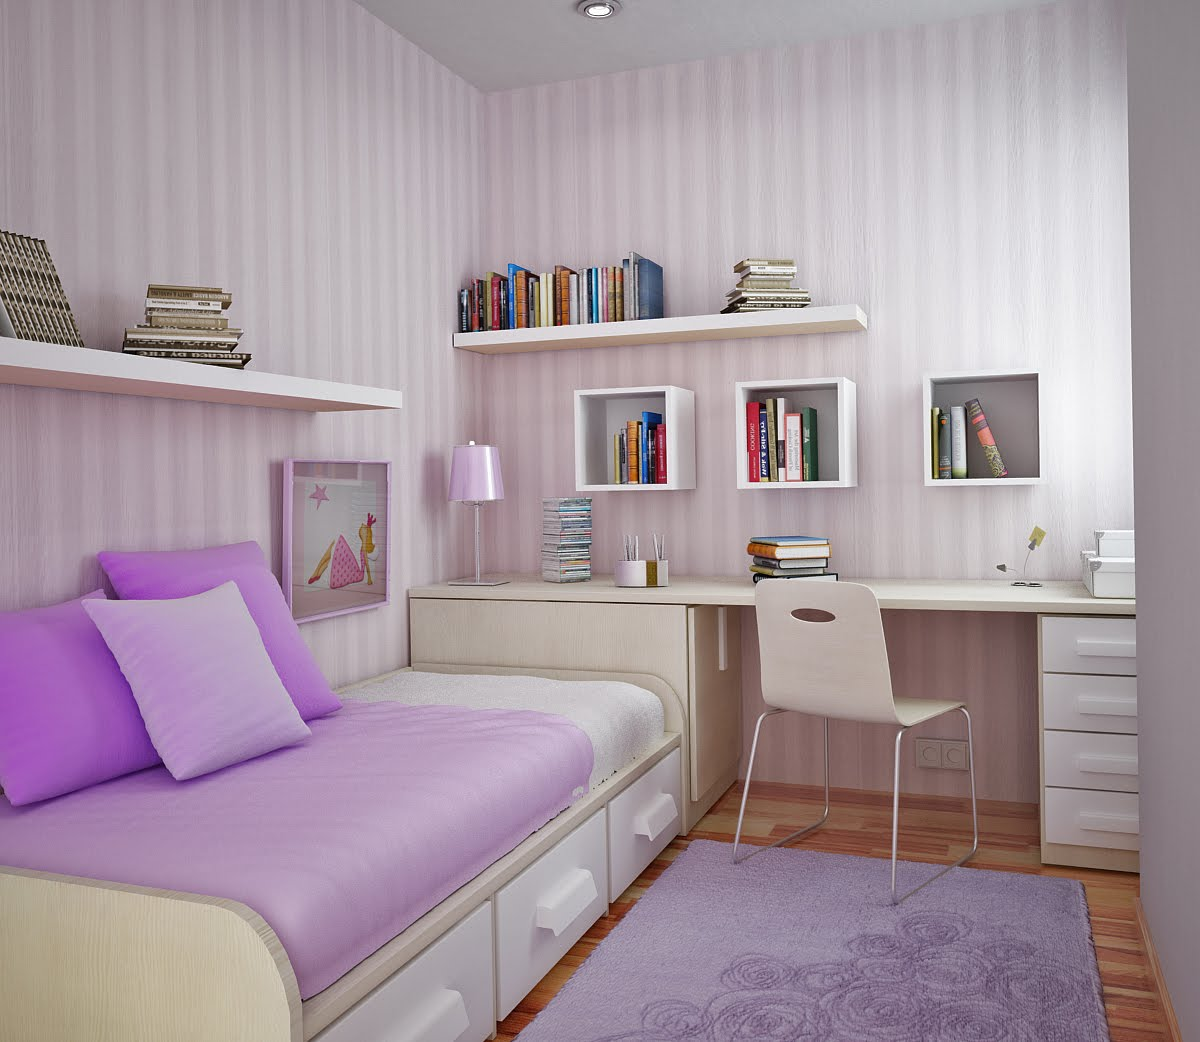 Bedroom Sets For Small Bedrooms bedroom sets for small bedrooms 78 inspiration ideas in bedroom sets for small bedrooms Lilac Room